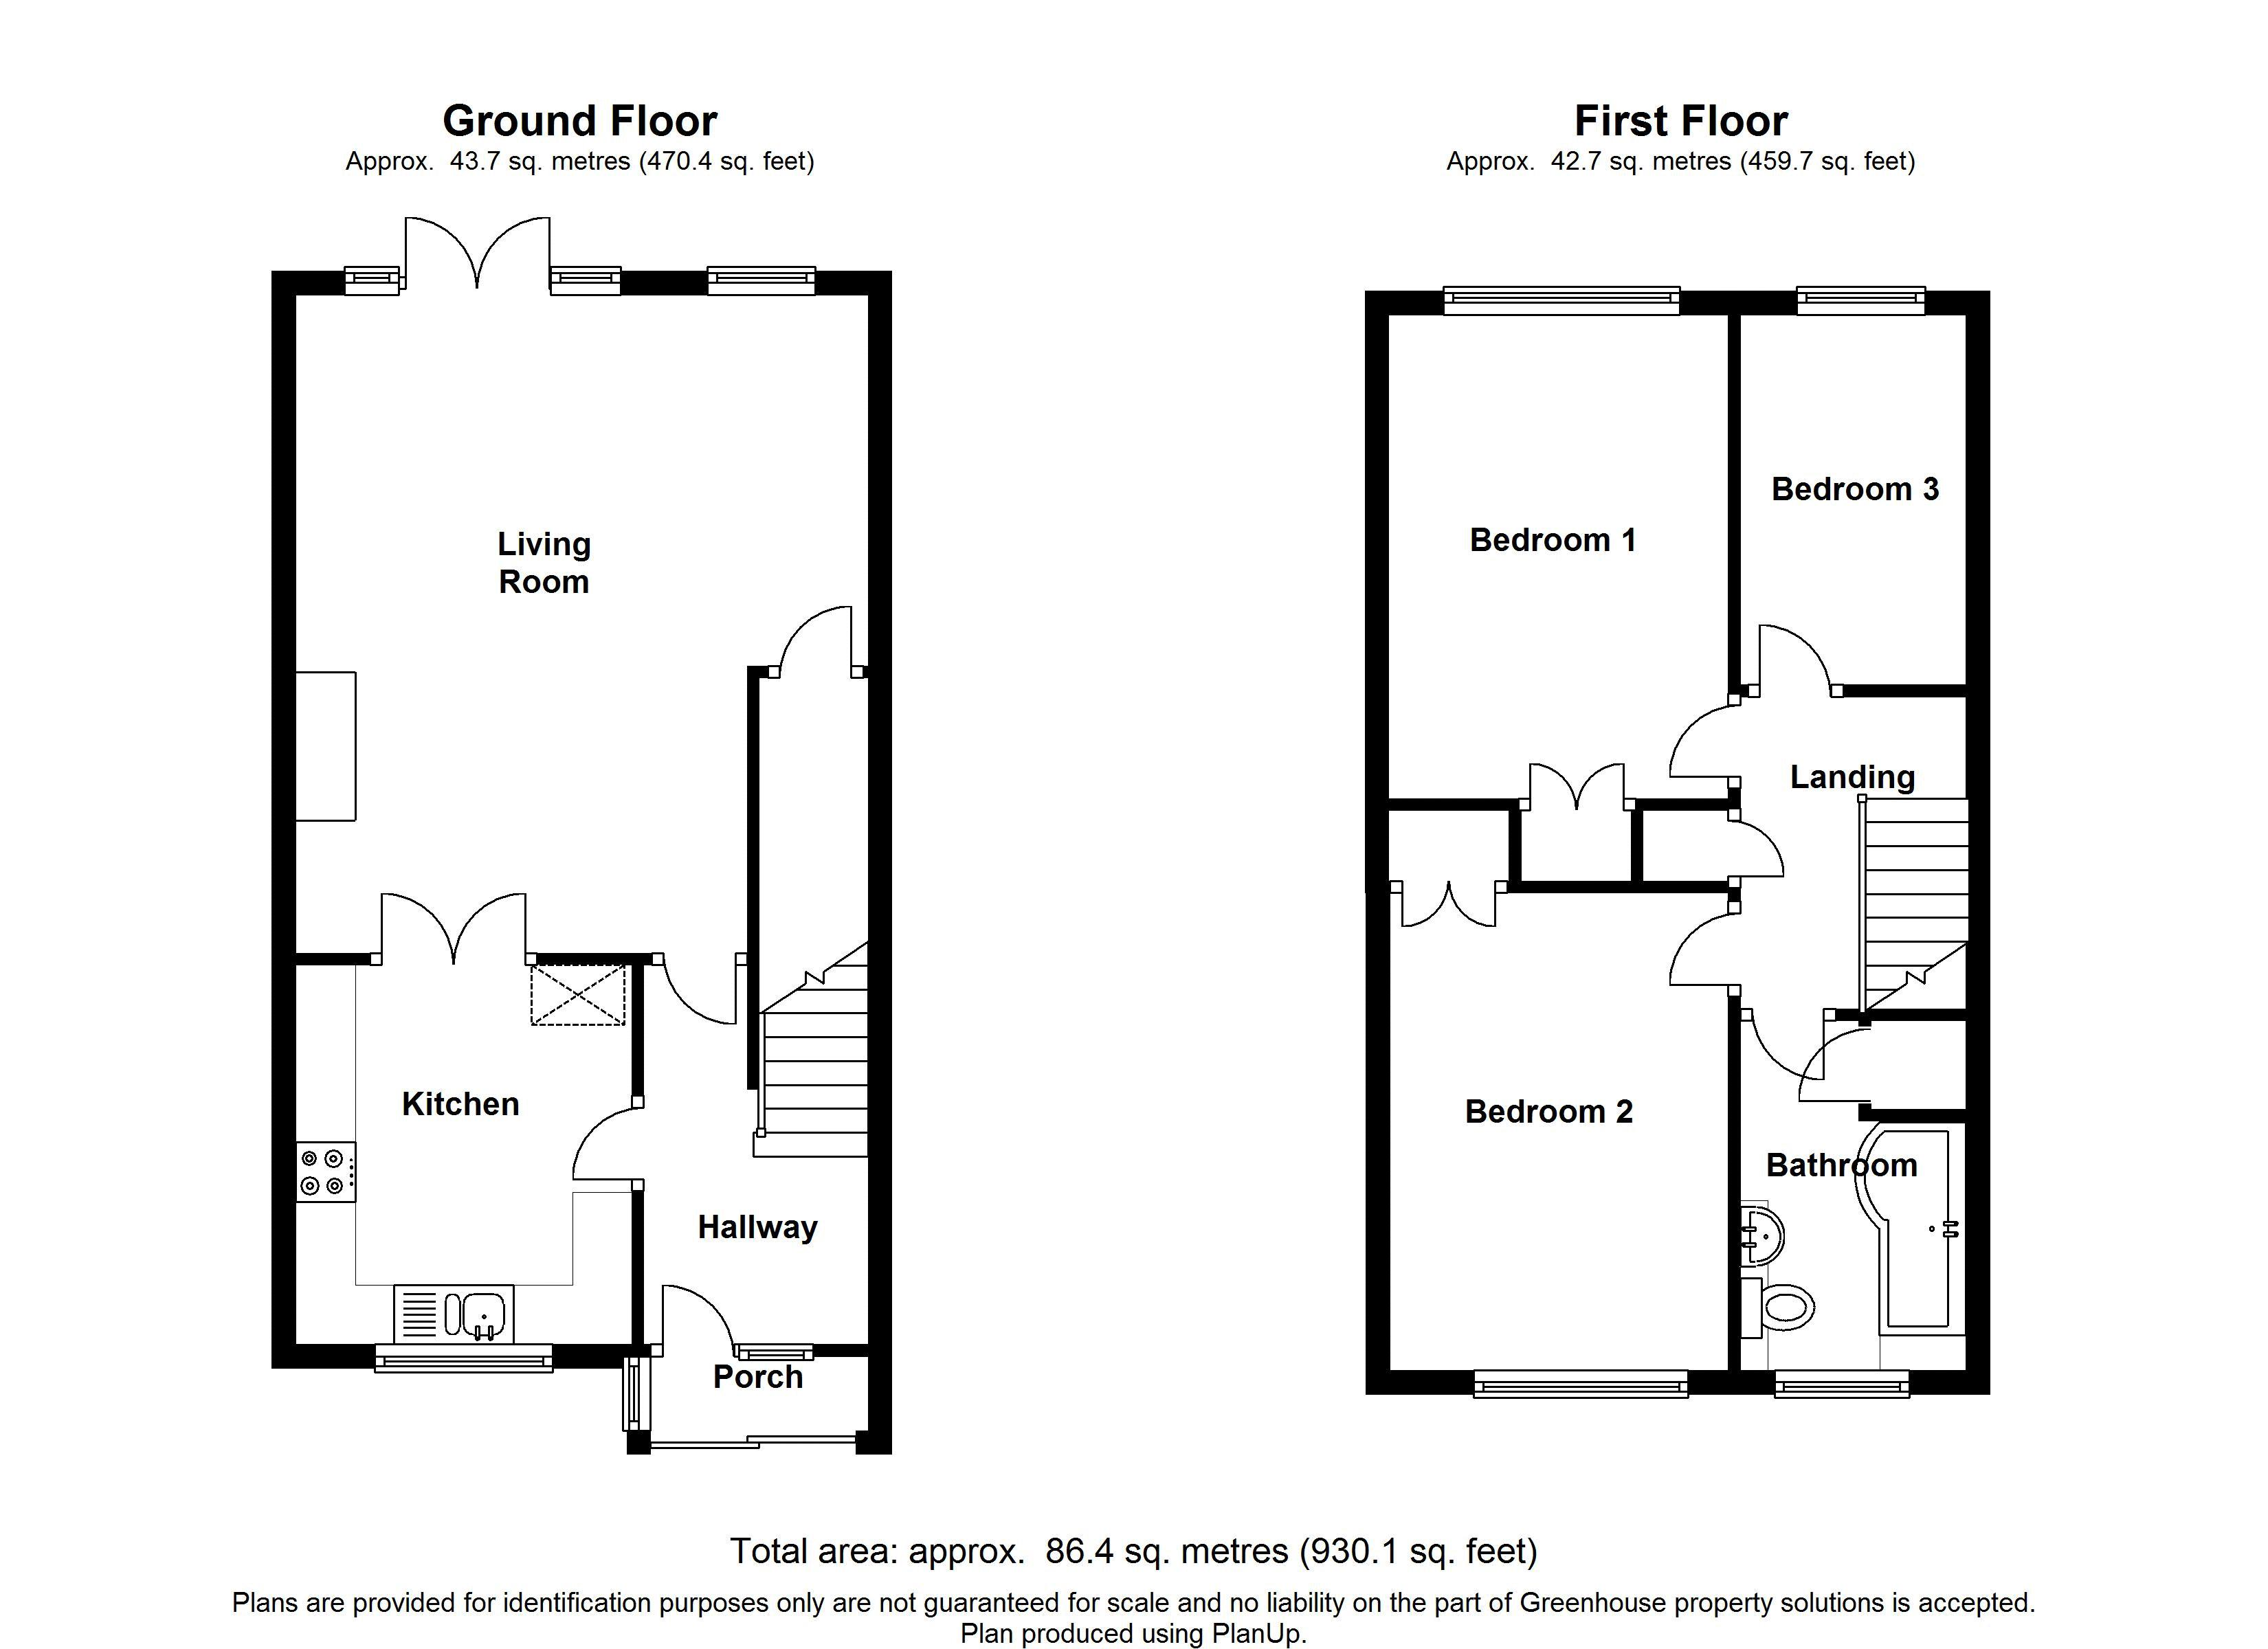 Farnham Close, Gillingham floor plan